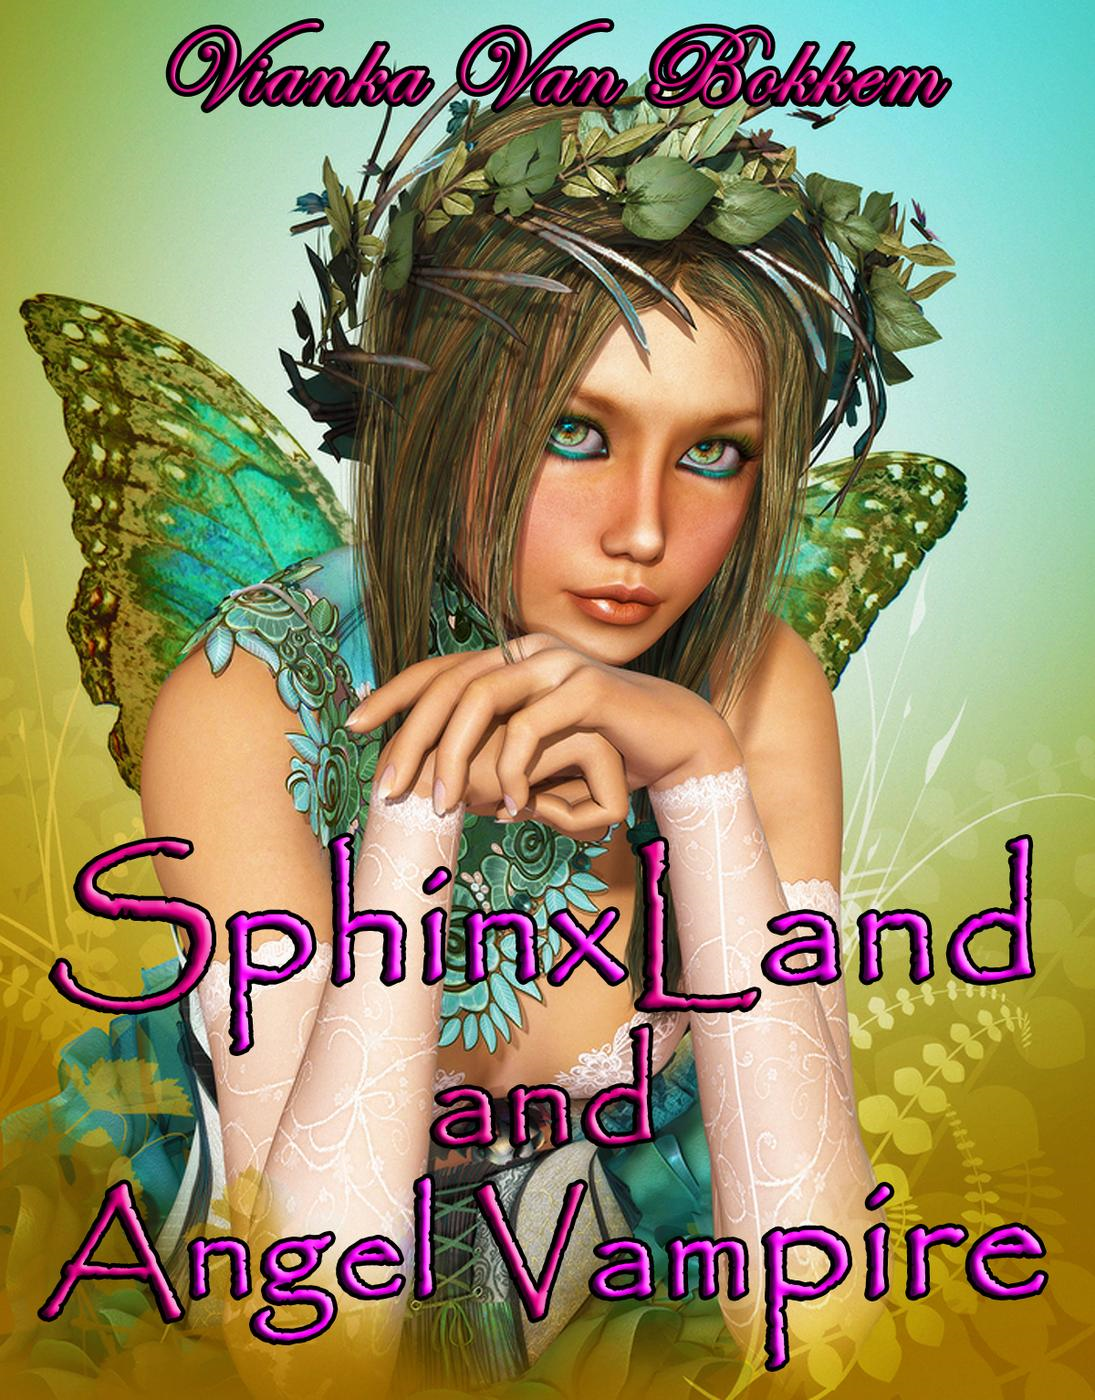 SphinxLand and Angel Vampire